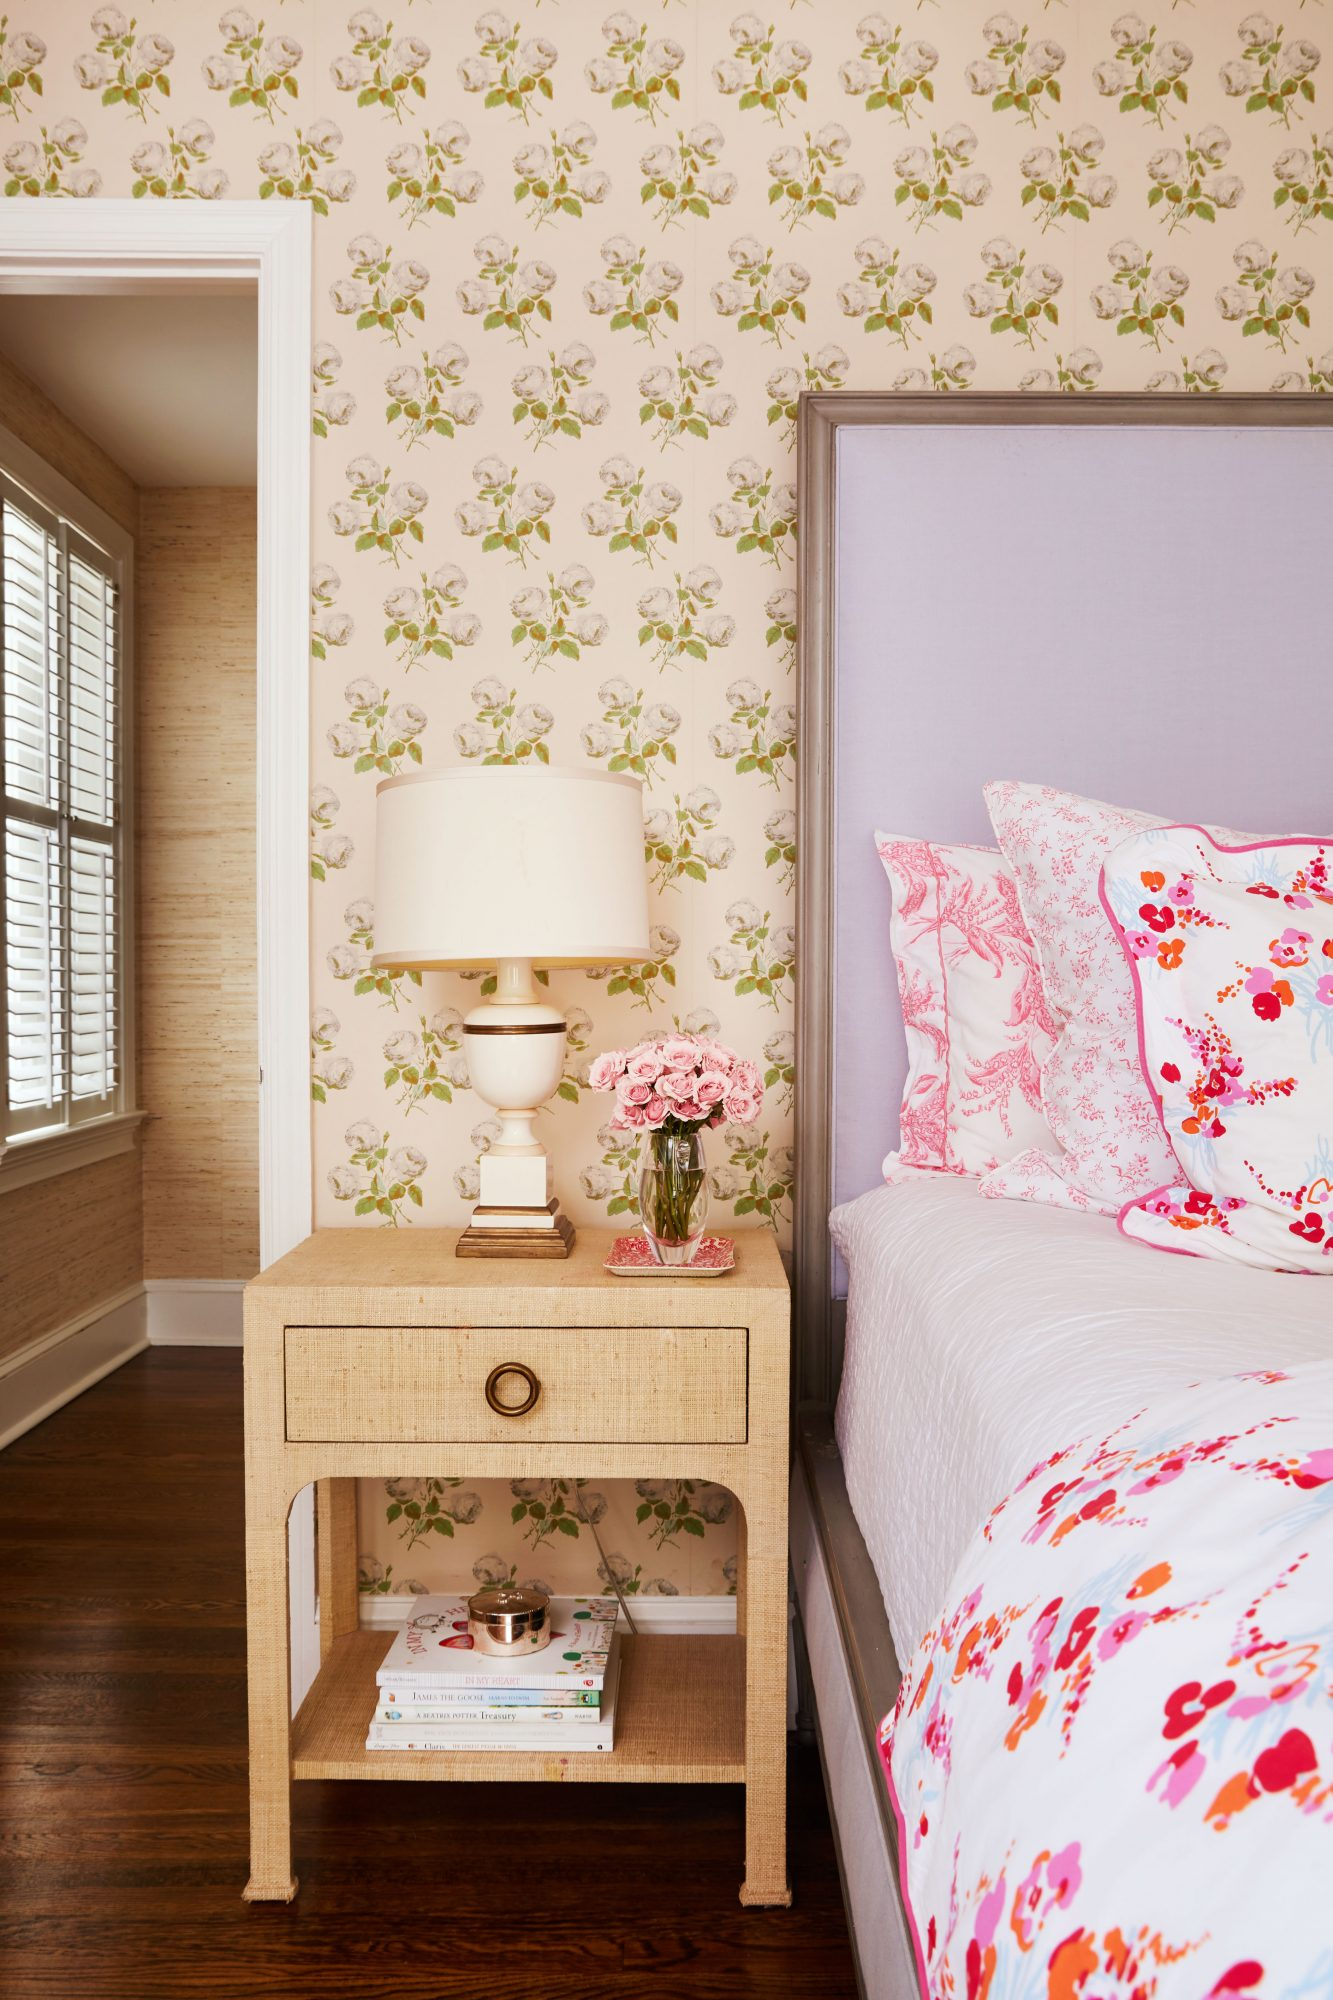 Young girl's bedroom with floral wallpaper, lavender upholstered bed, and pink bed linens